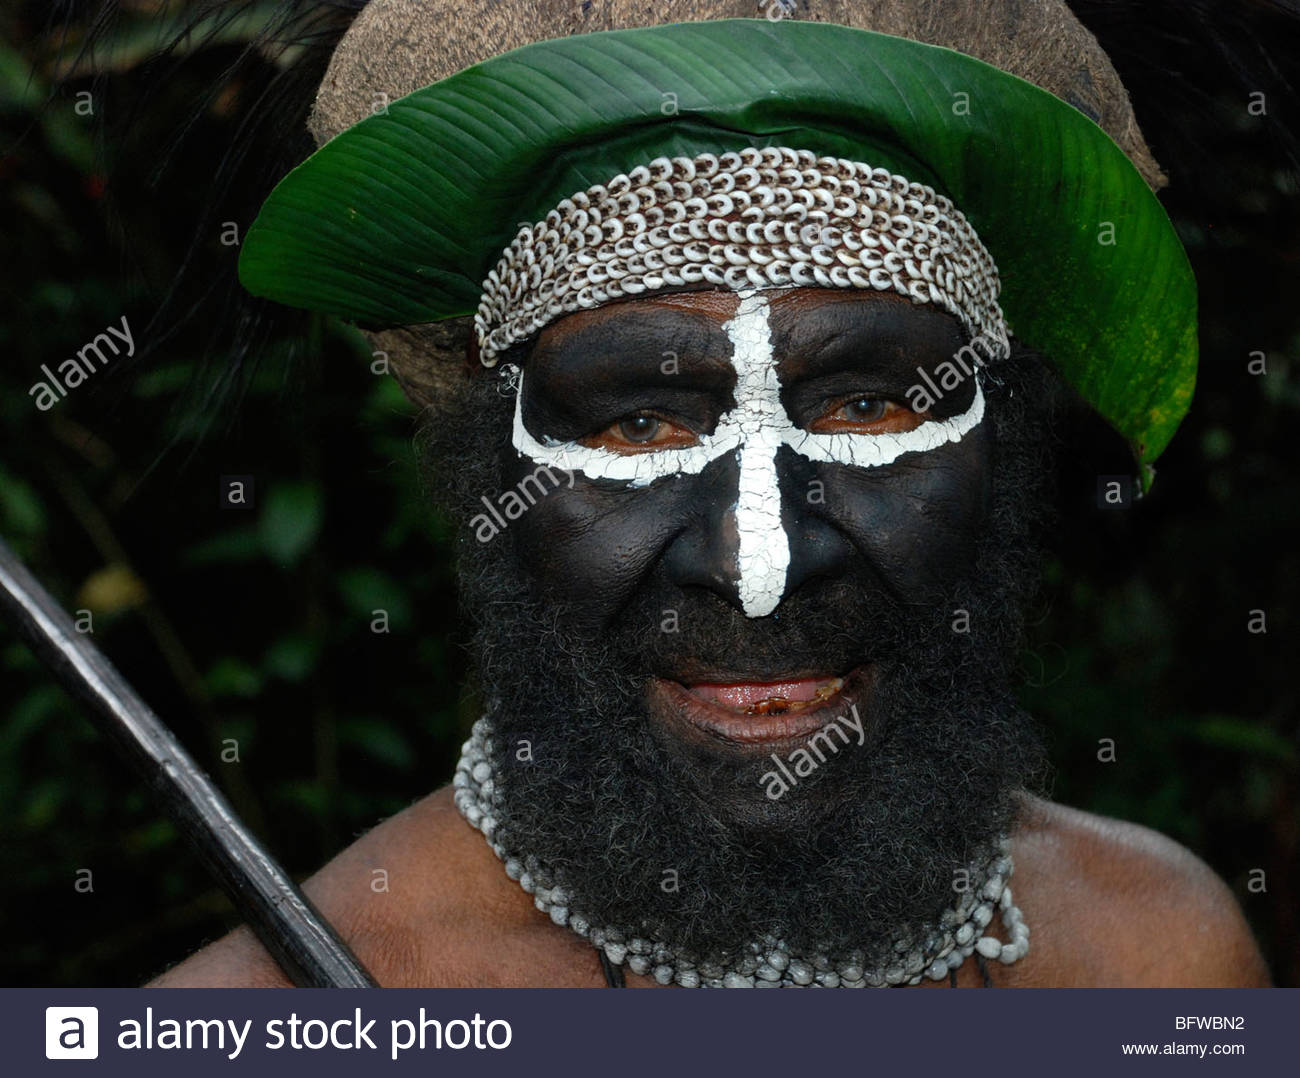 Head shot of Melpa clan village chief Western Highands, Papua New Guinea - Stock Image